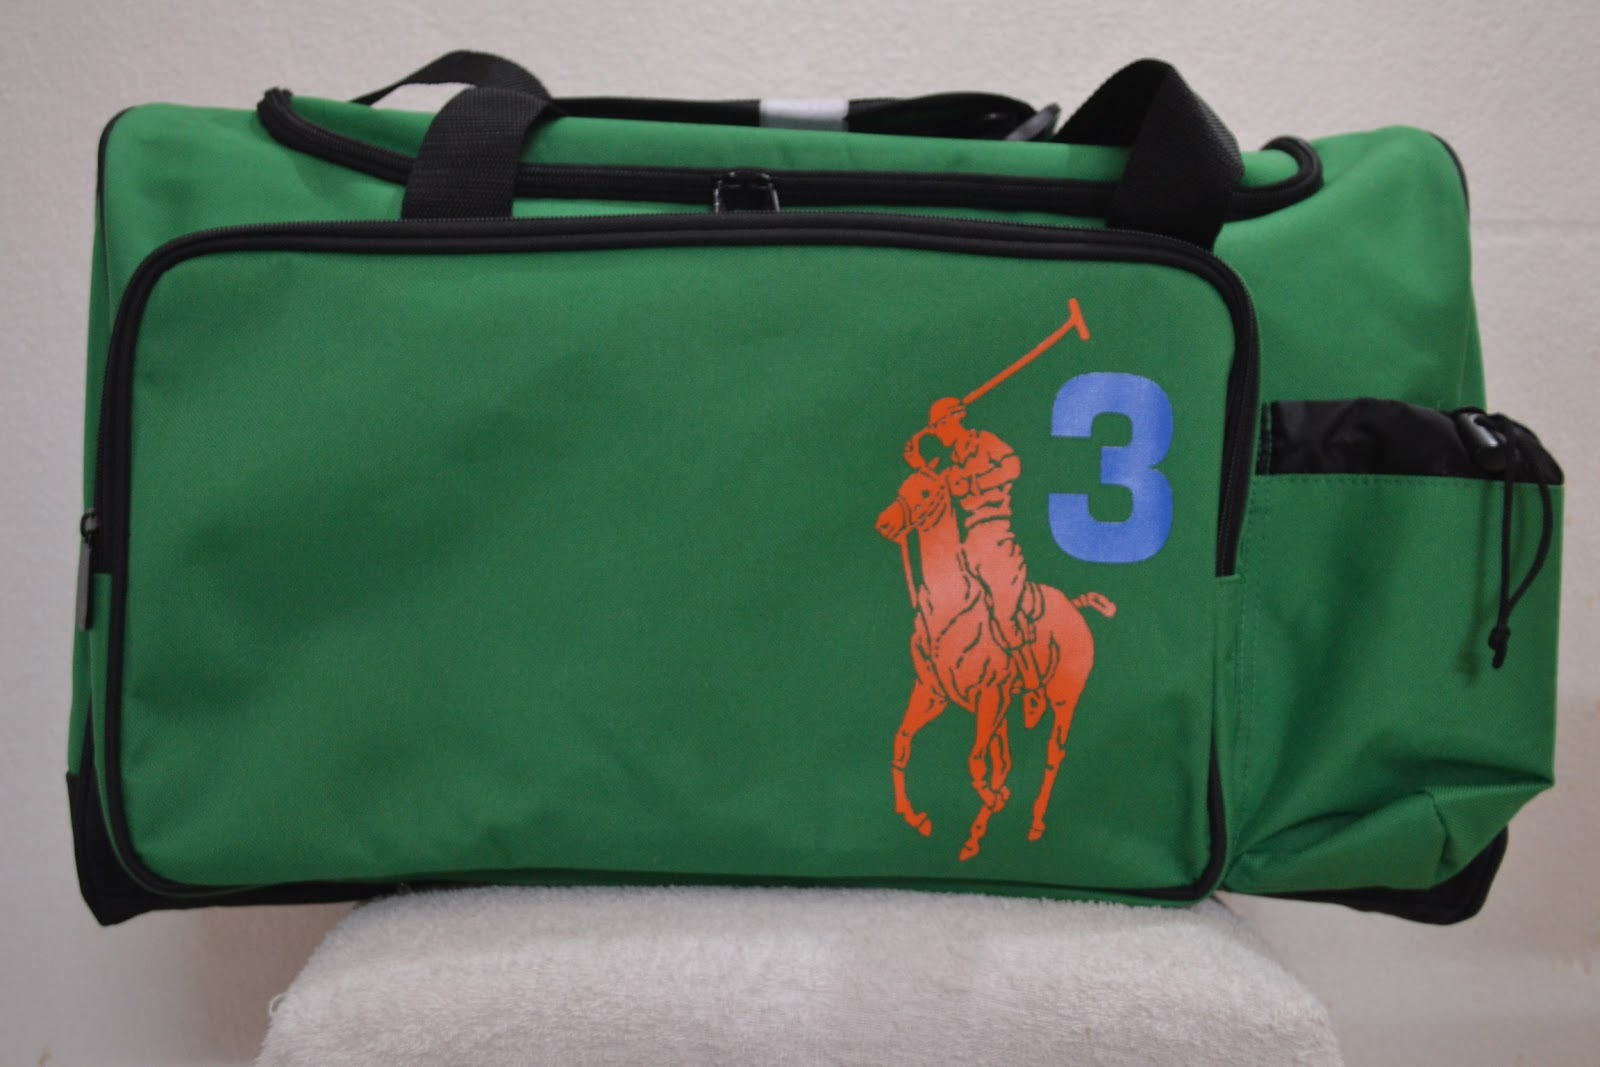 Polo Ralph Lauren Big Pony Weekender Travel Duffle Sports Gym Bag Green 3 f629200059943